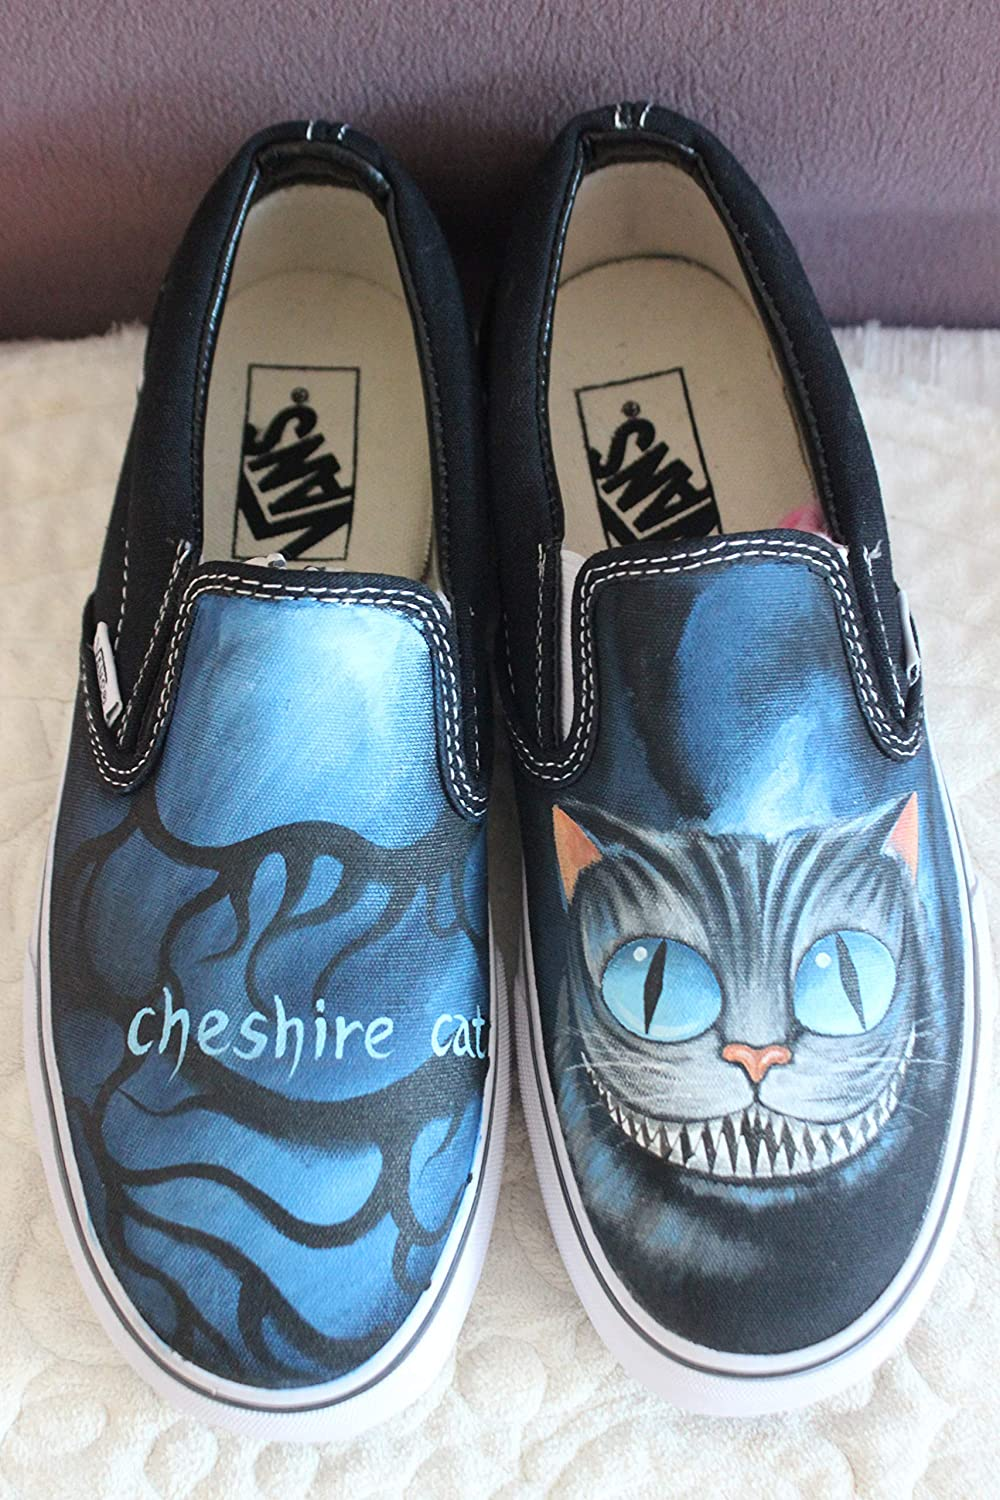 fd7e5ed9617a0d Custom Vans Alice in Wonderland Custom Vans Cheshire Cat Vans Sneakers  Women Vans Shoes Slip On Sneakers  Amazon.co.uk  Handmade